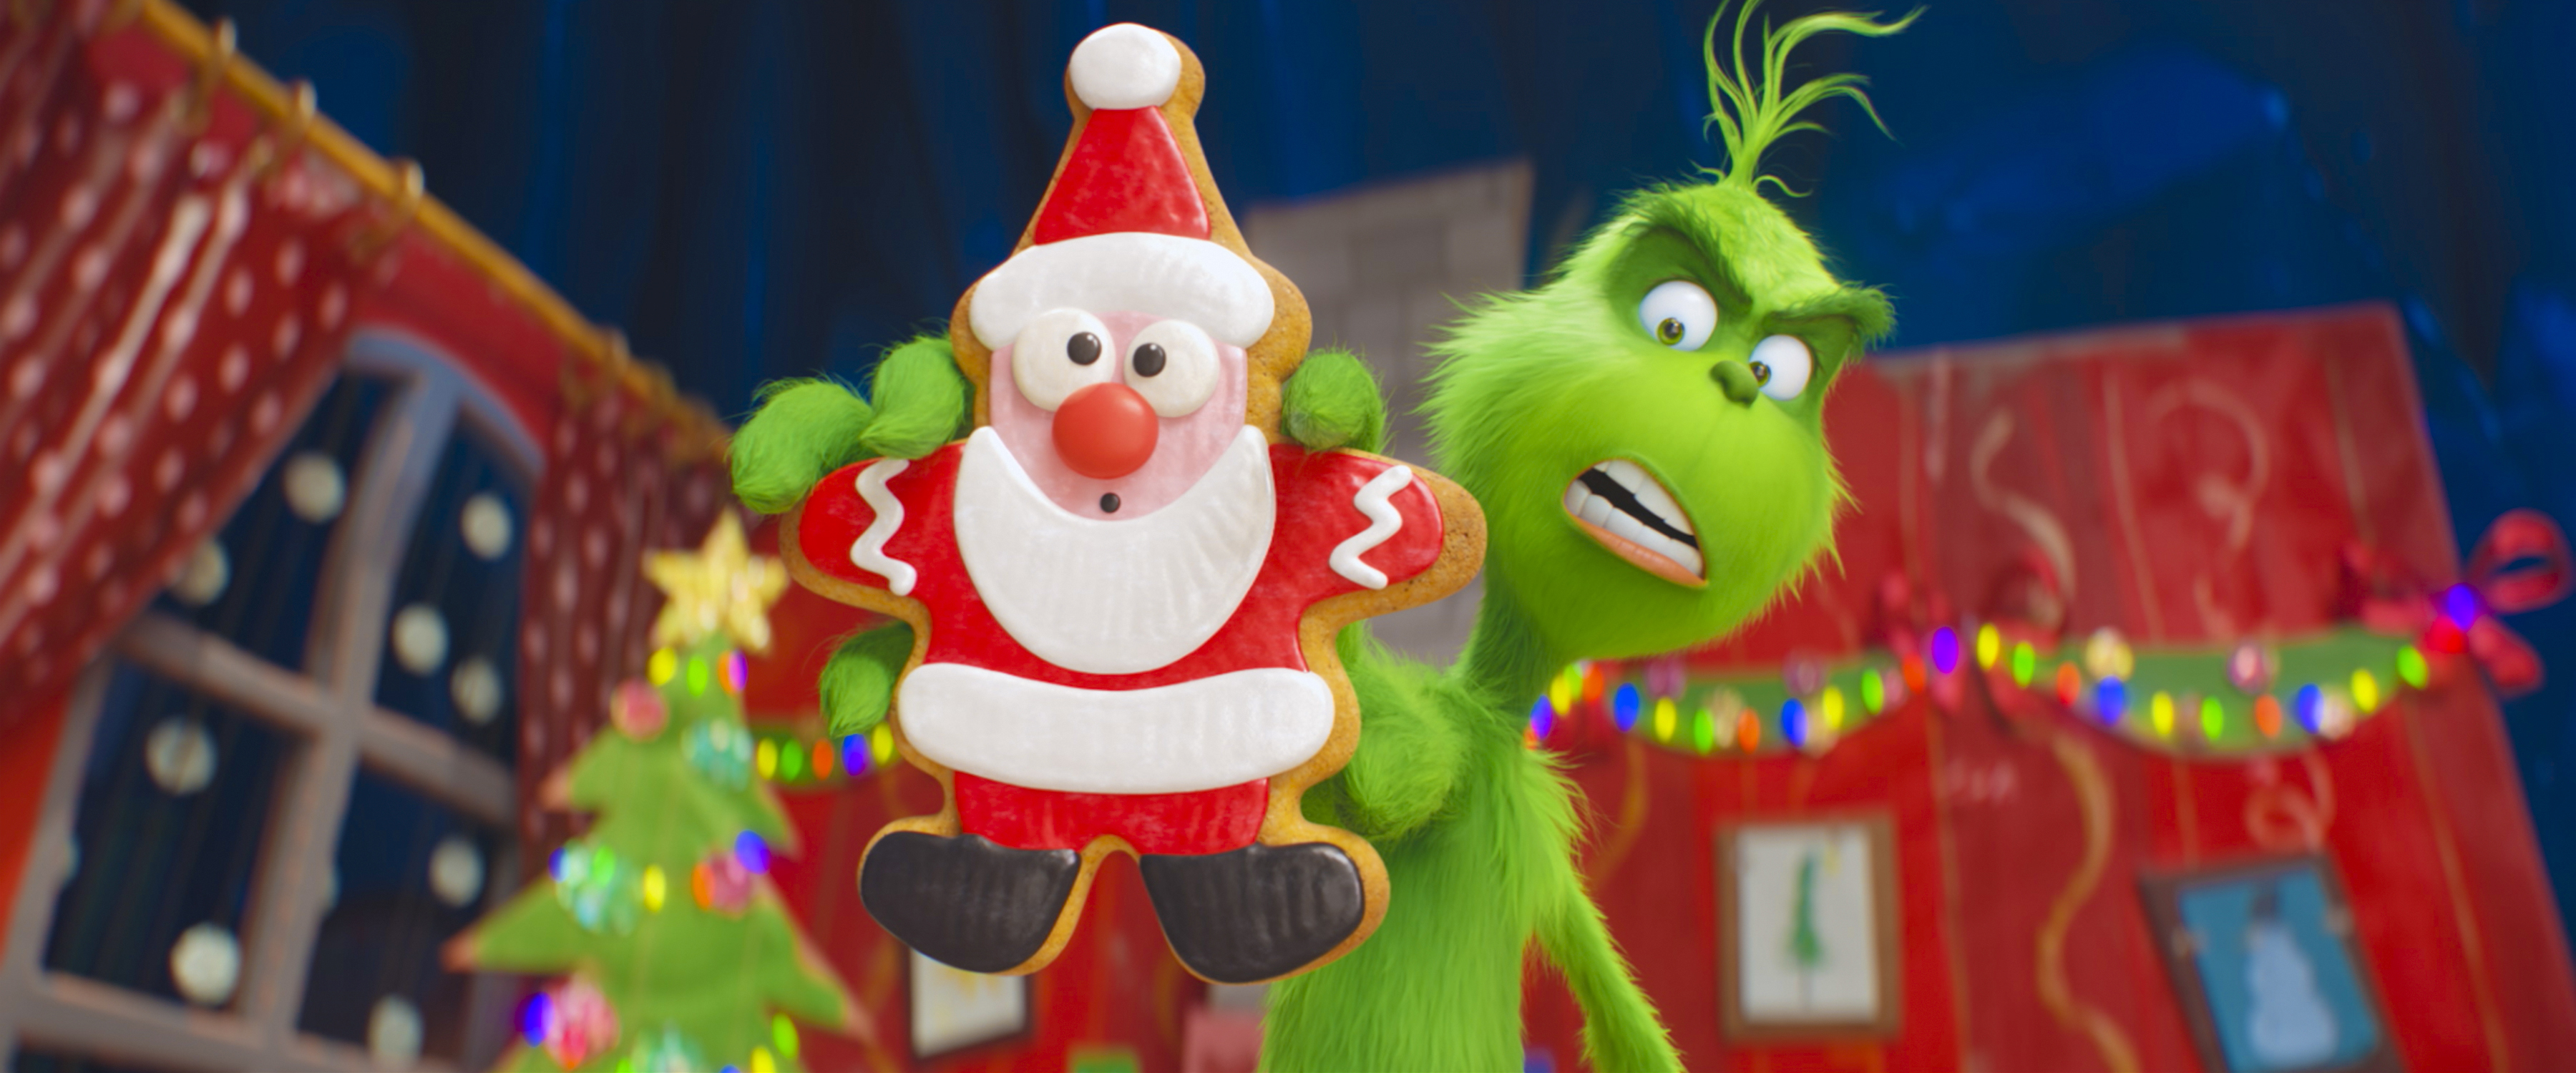 How The Grinch Stole Christmas Movie Characters.Do We Need Another Grinch Movie Some Reviews Say Yes But